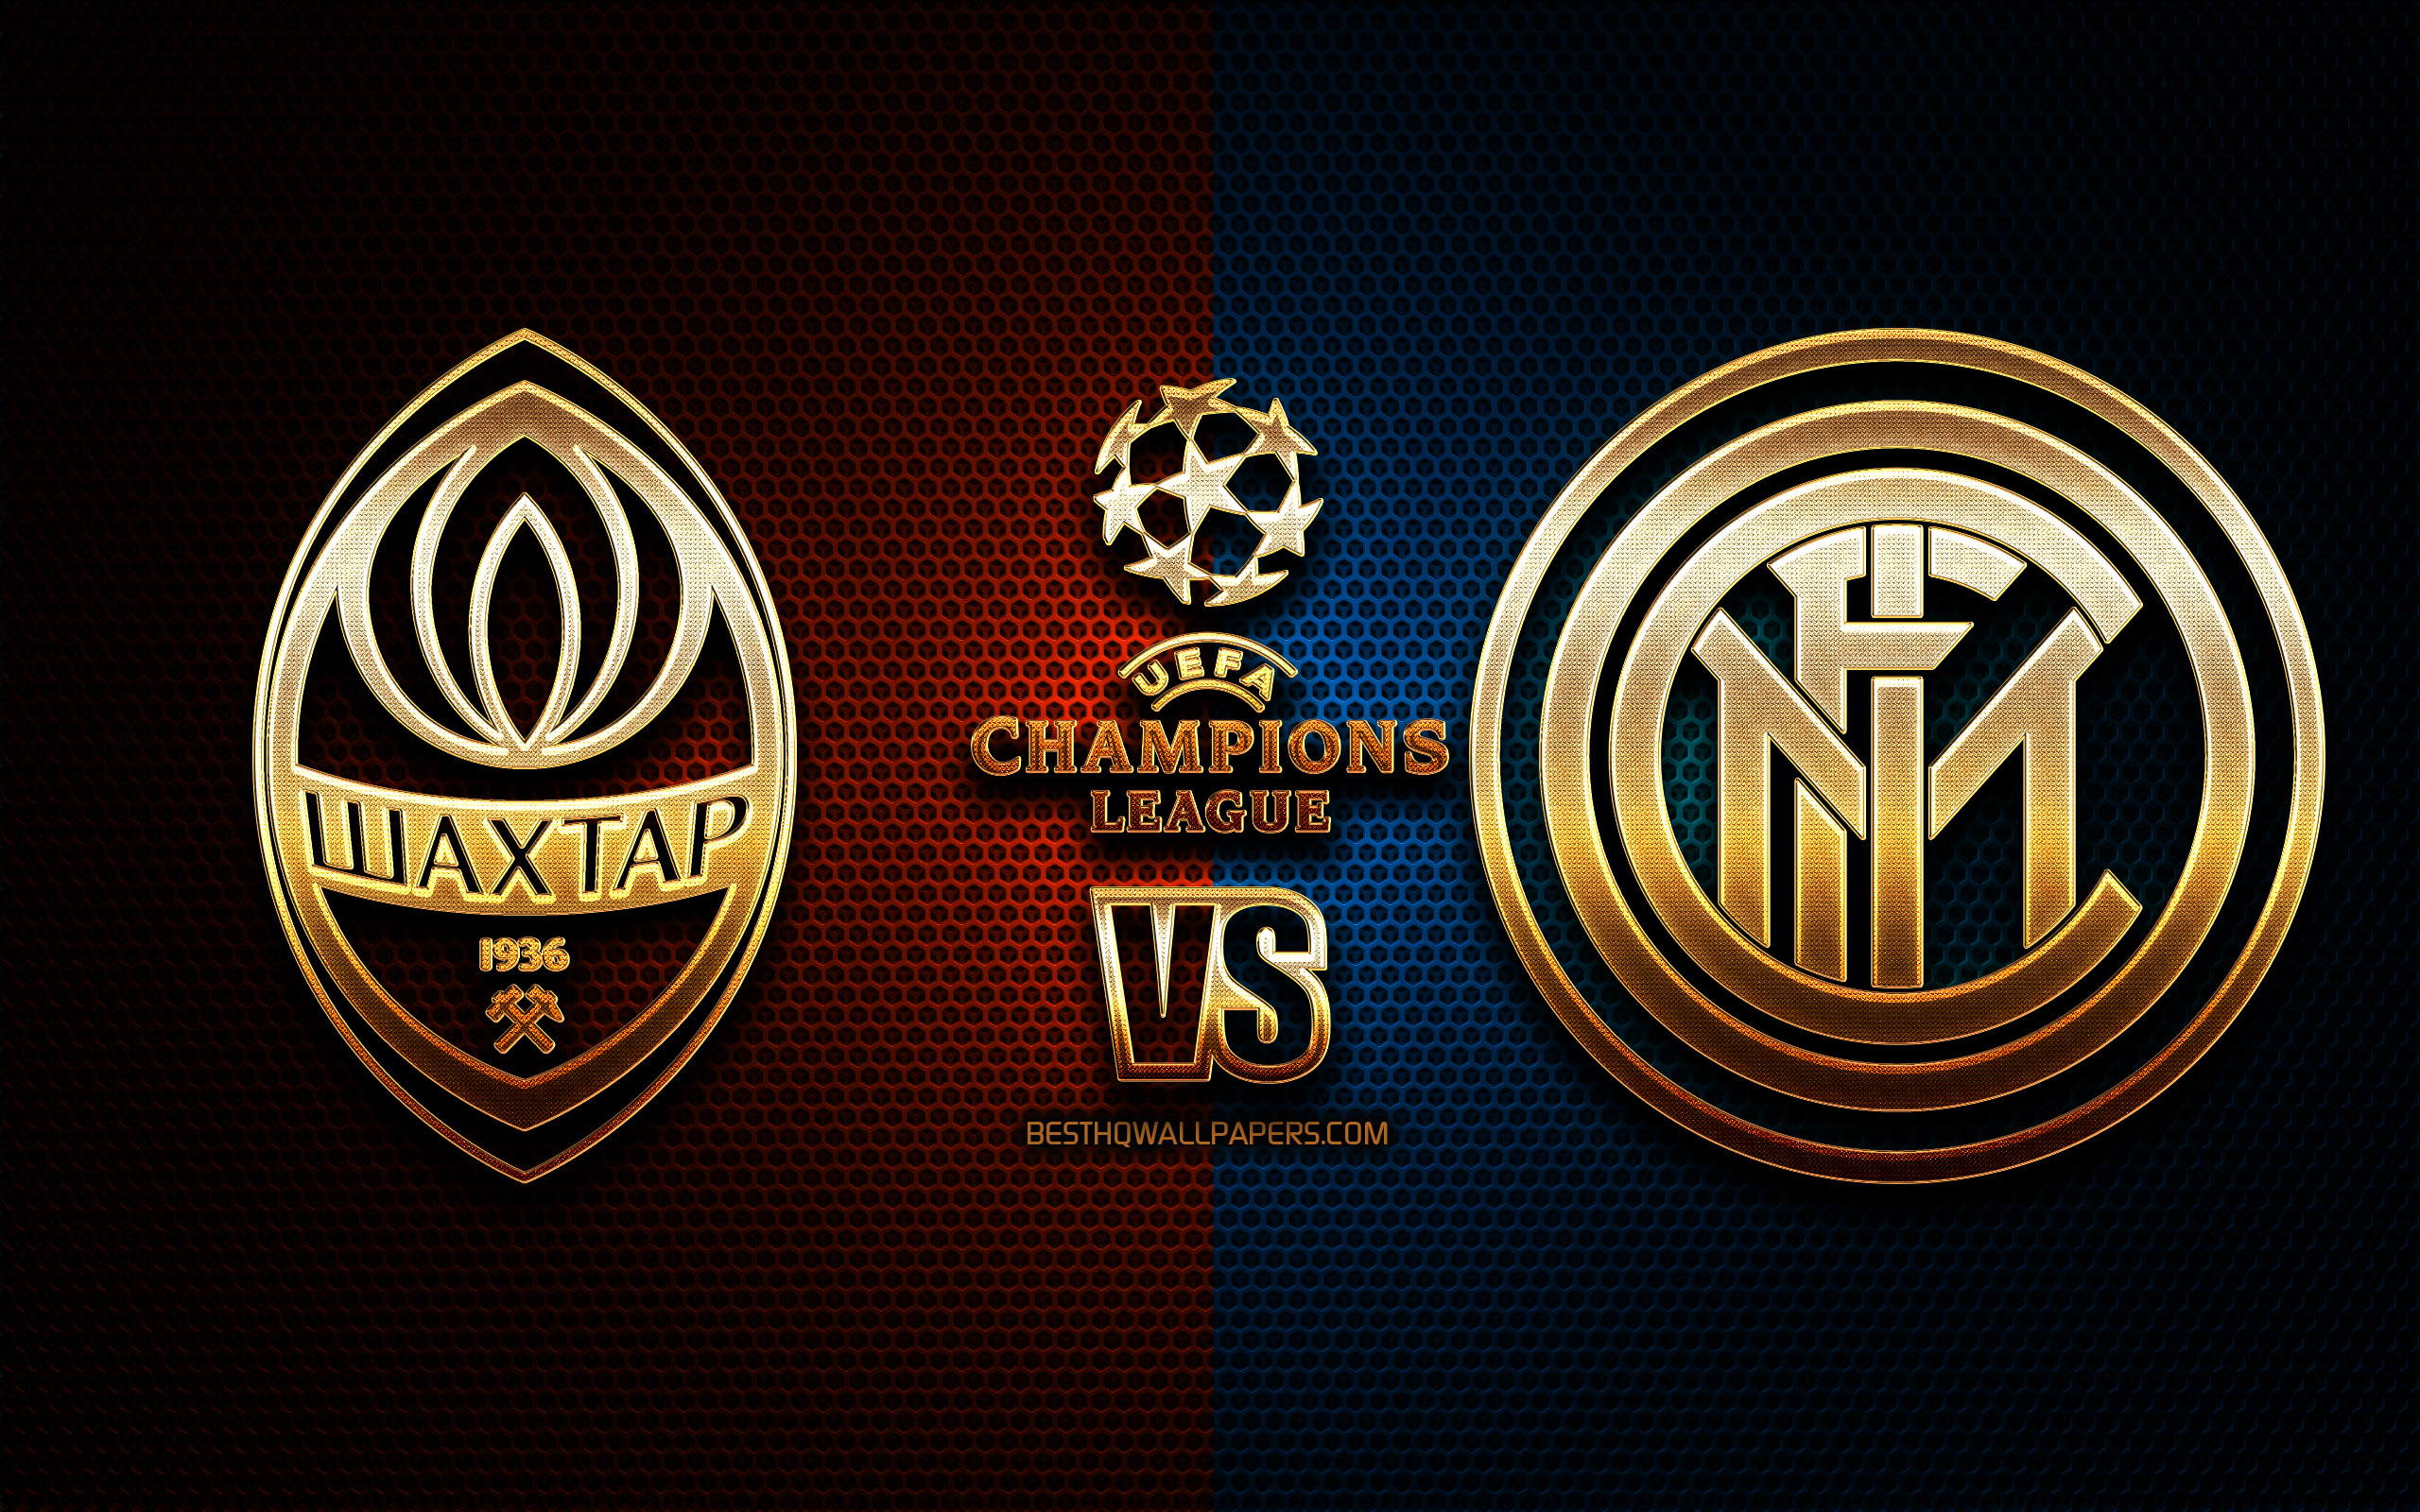 Download wallpapers Shakhtar Donetsk vs Inter Milan, season 2020-2021, Group B, UEFA Champions League, metal grid backgrounds, golden glitter logo, Internazionale, FC Shakhtar Donetsk, UEFA for desktop with resolution 2560x1600. High Quality